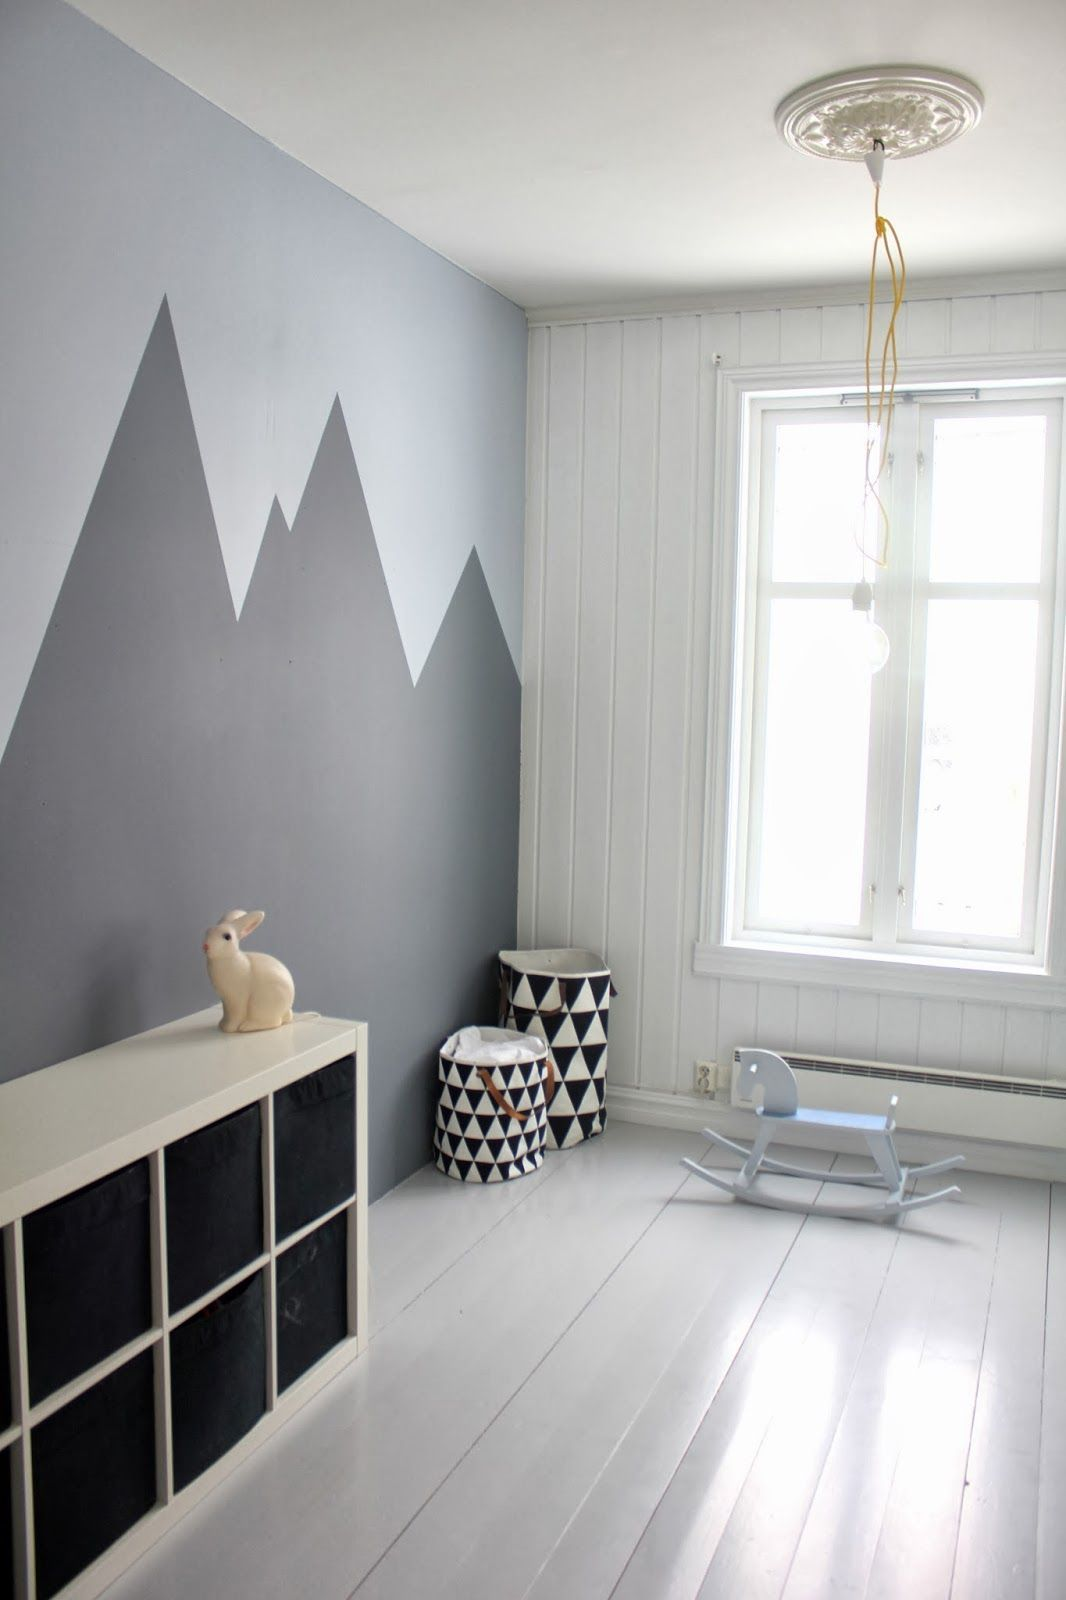 Like The Mountain Range Is This Chalkboard Paint But The Lack Of Color Is Dismal Dreary Kinder Zimmer Kinderzimmer Babyzimmer Wandgestaltung